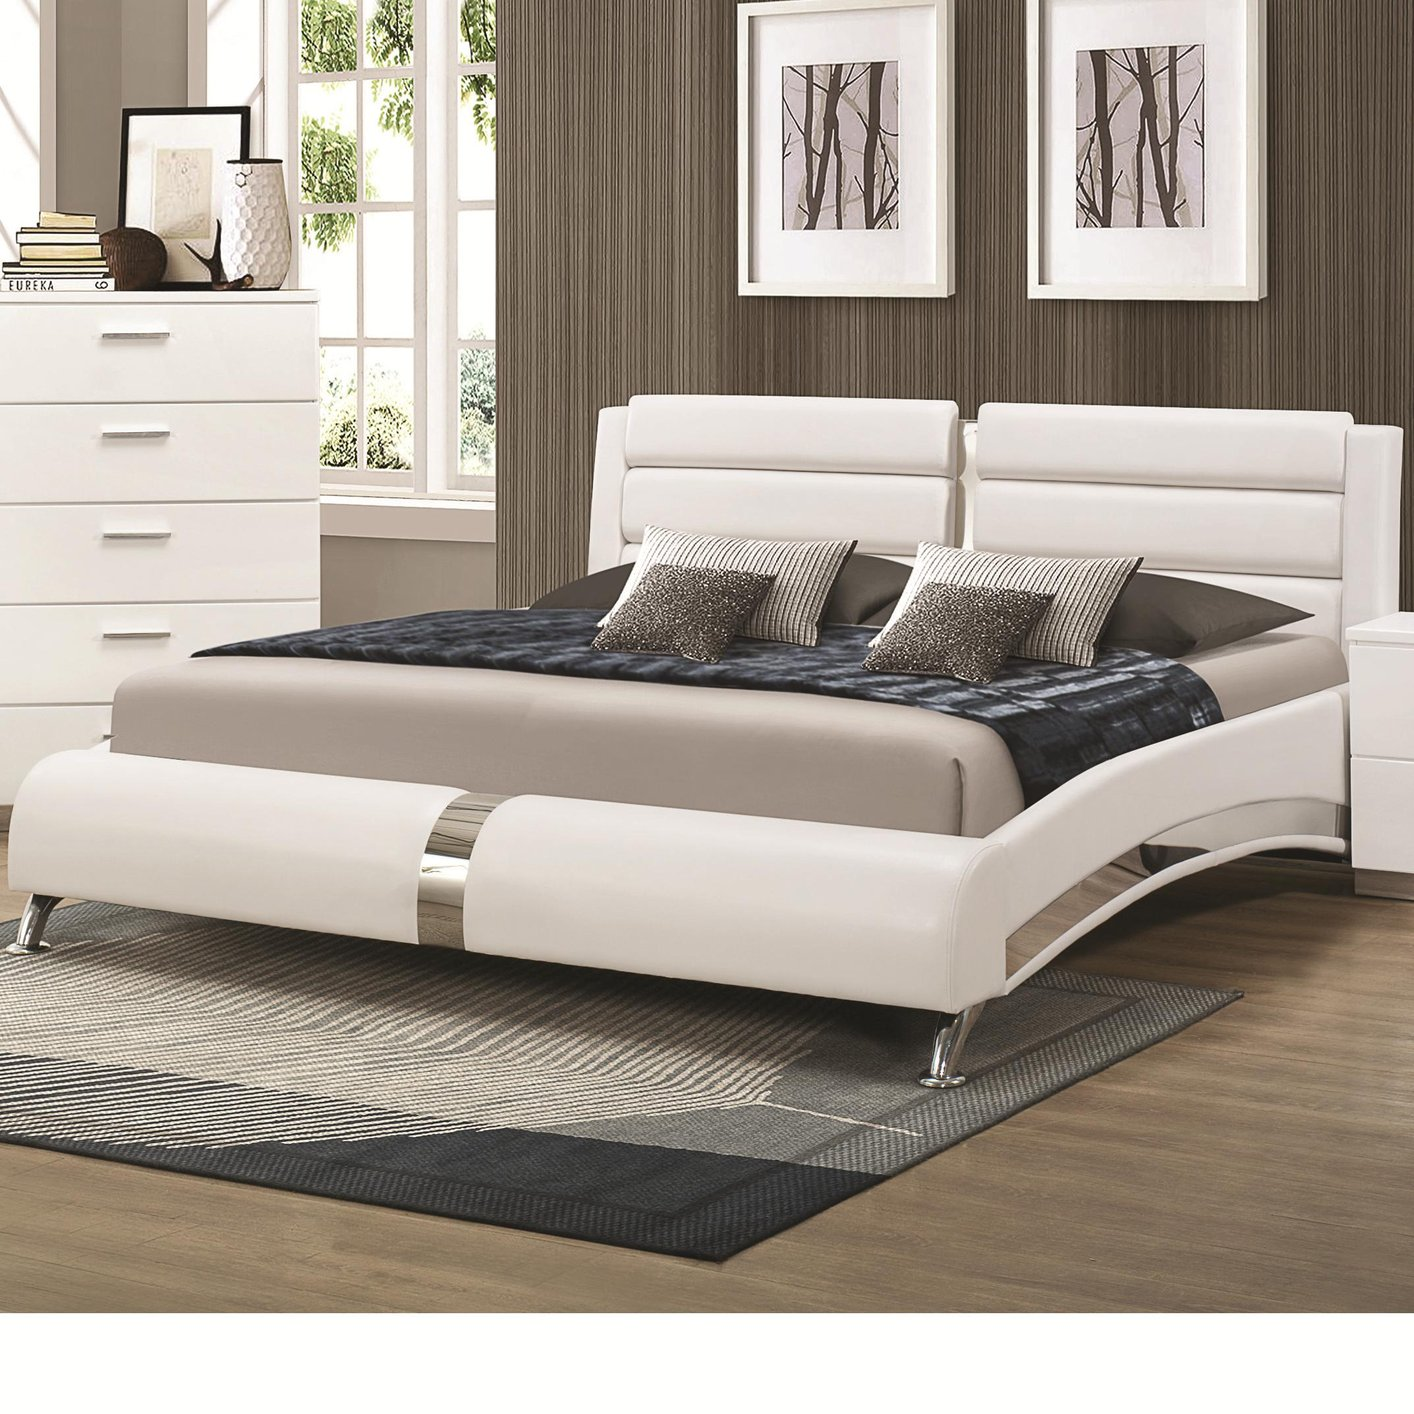 Coaster 300345kw silver california king size wood bed for Cal king bed size